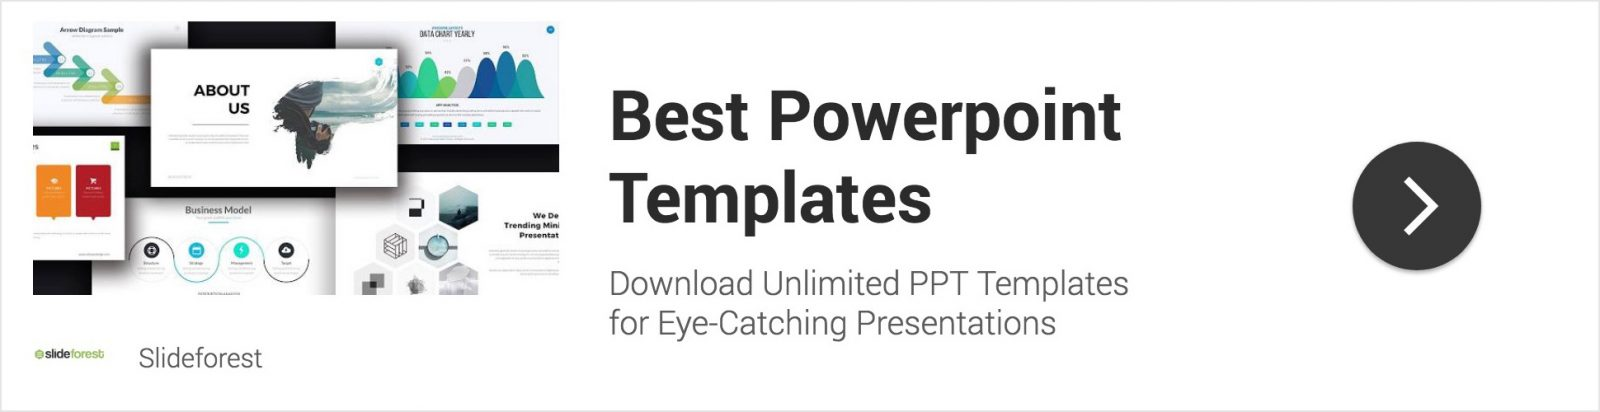 25 free business powerpoint templates for presentations business powerpoint templates cheaphphosting